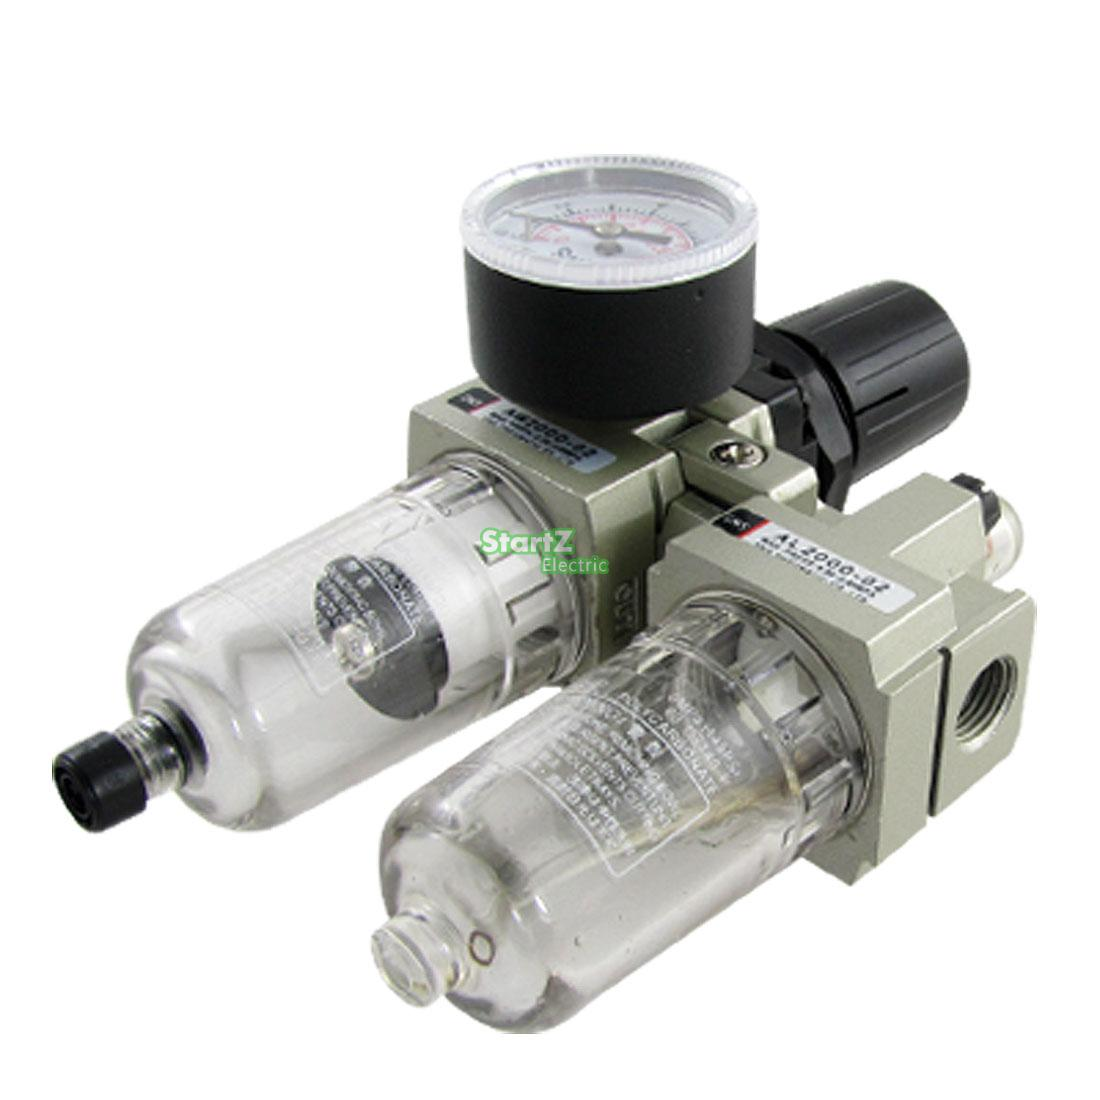 AC2010-02D SMC Automatic Drain type air filter  pneumatic components gas source processor two joint oil-water separator japan smc original genuine source of gas source processor ad402 04 end of the automatic drain water separator